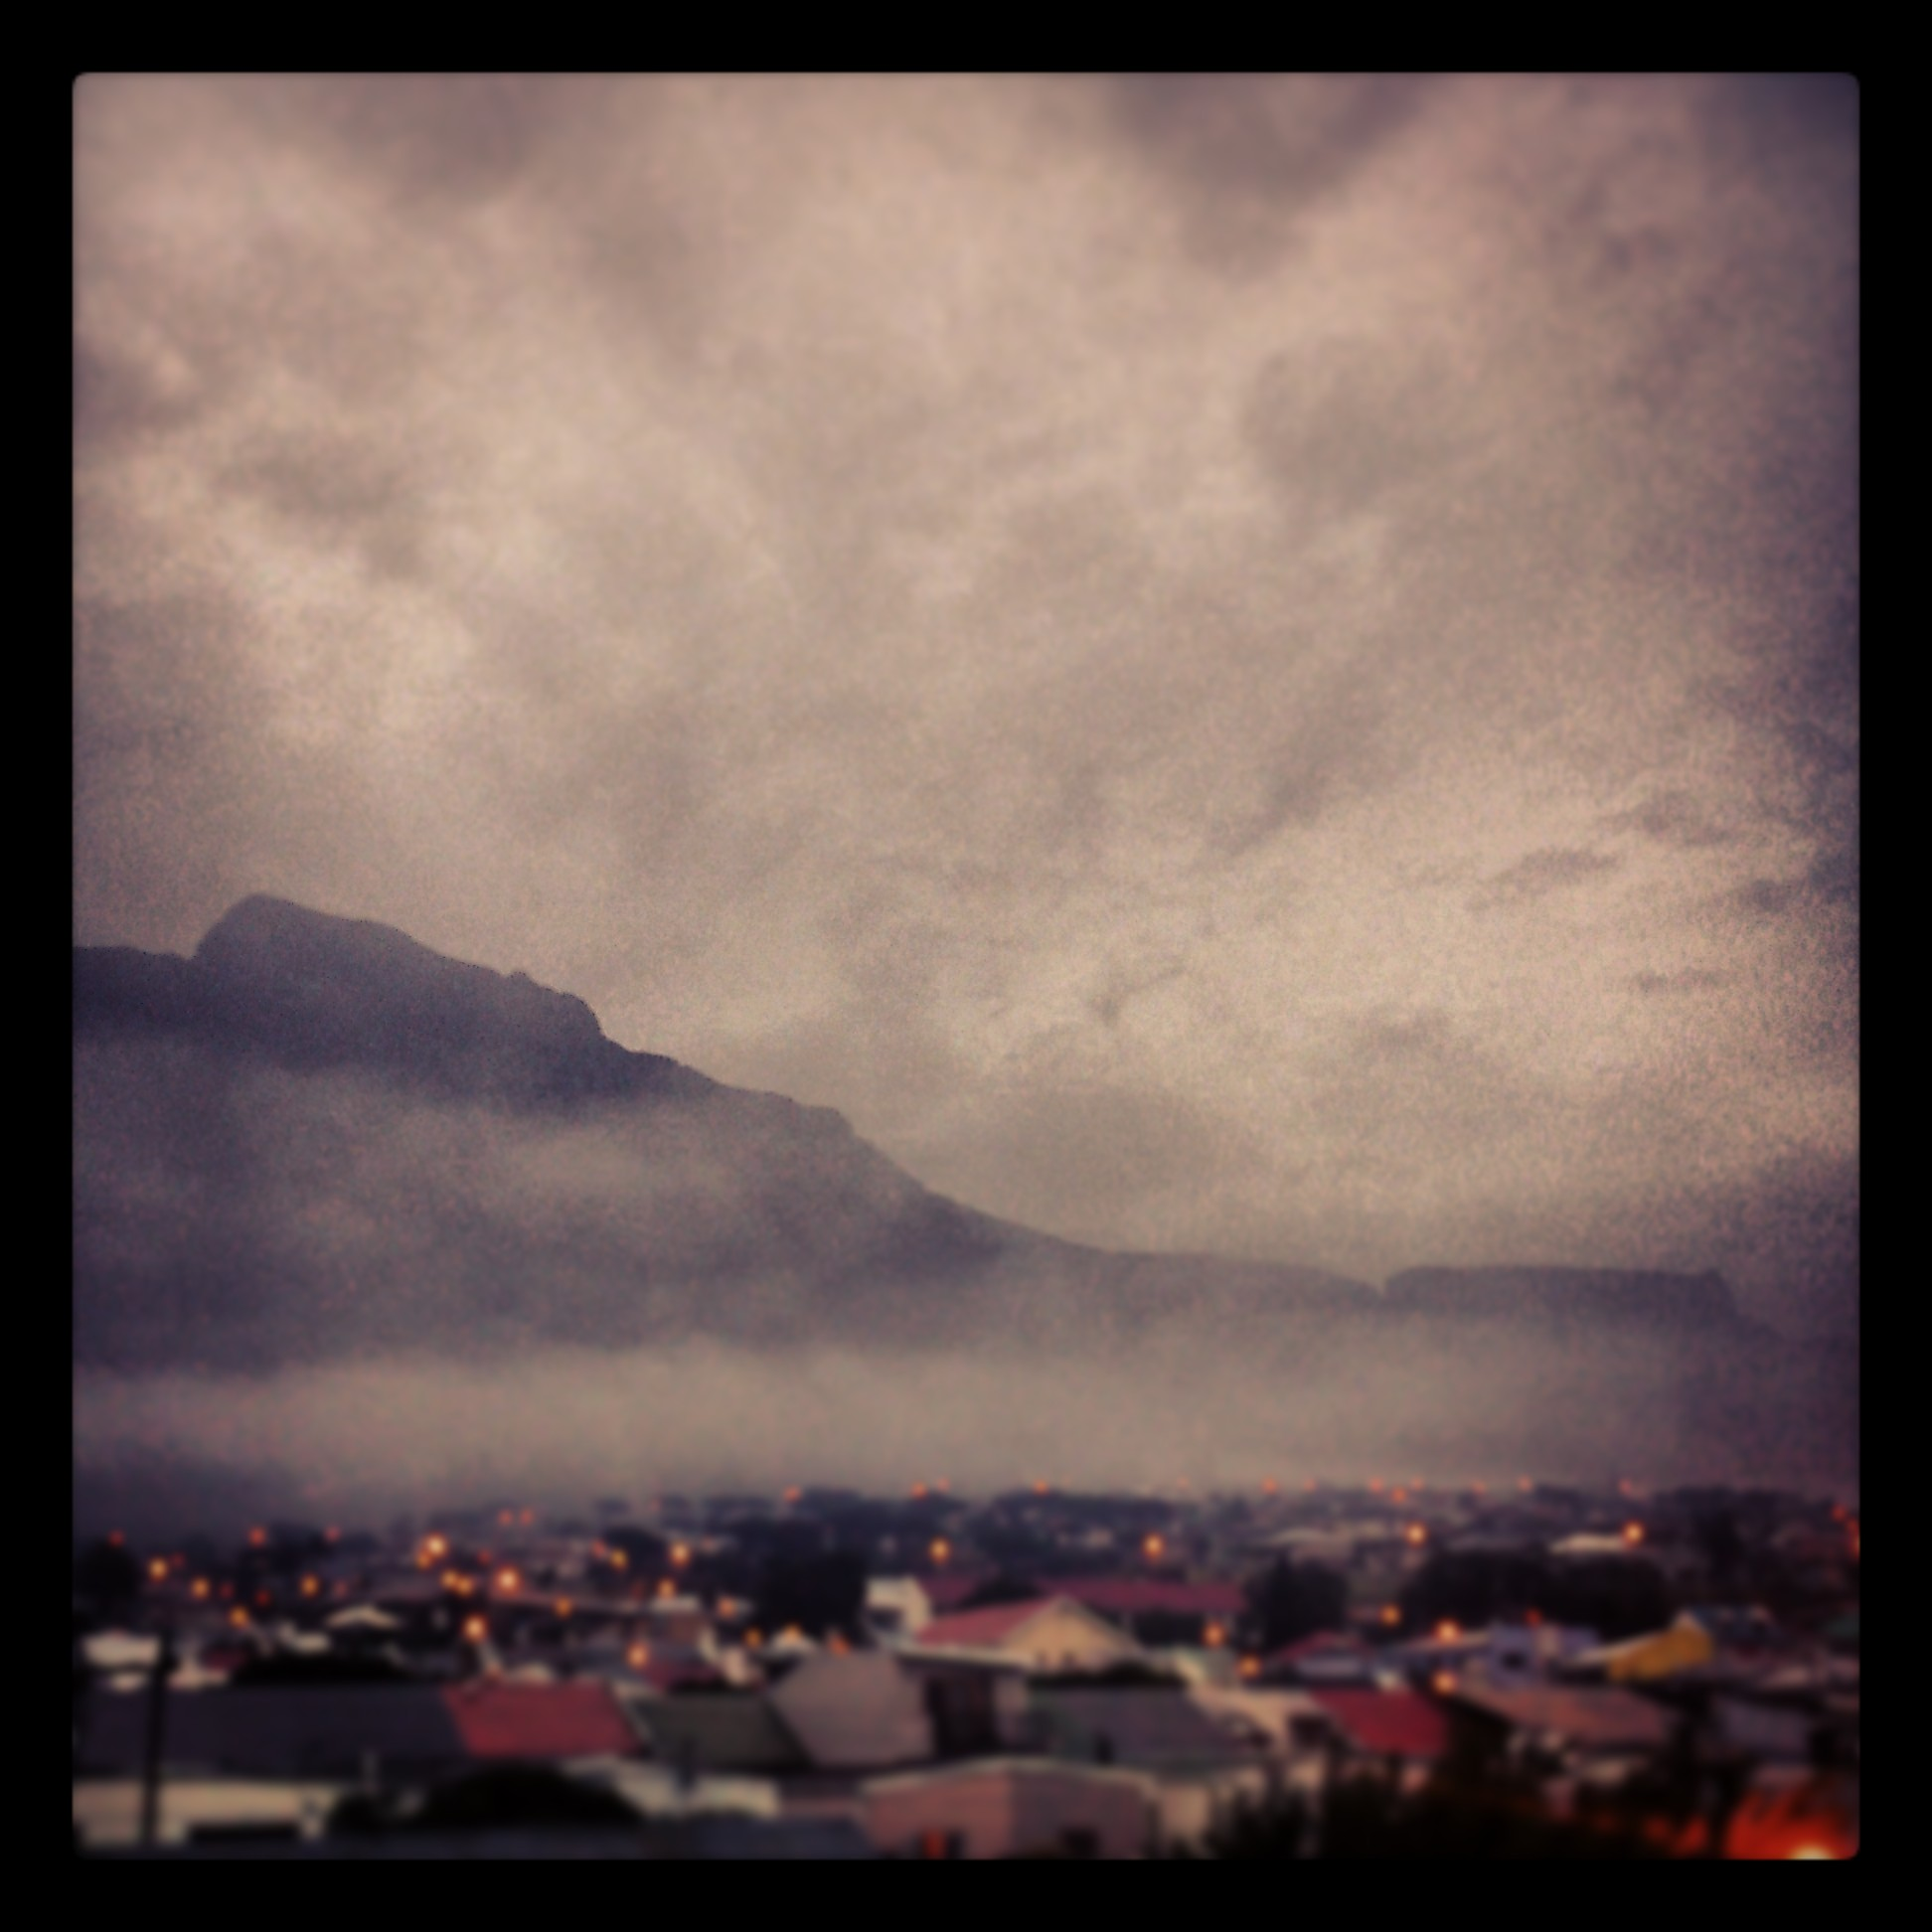 An unseasonable morning in Cape Town - December 2014.  Instagram image shot on Sony Experia M